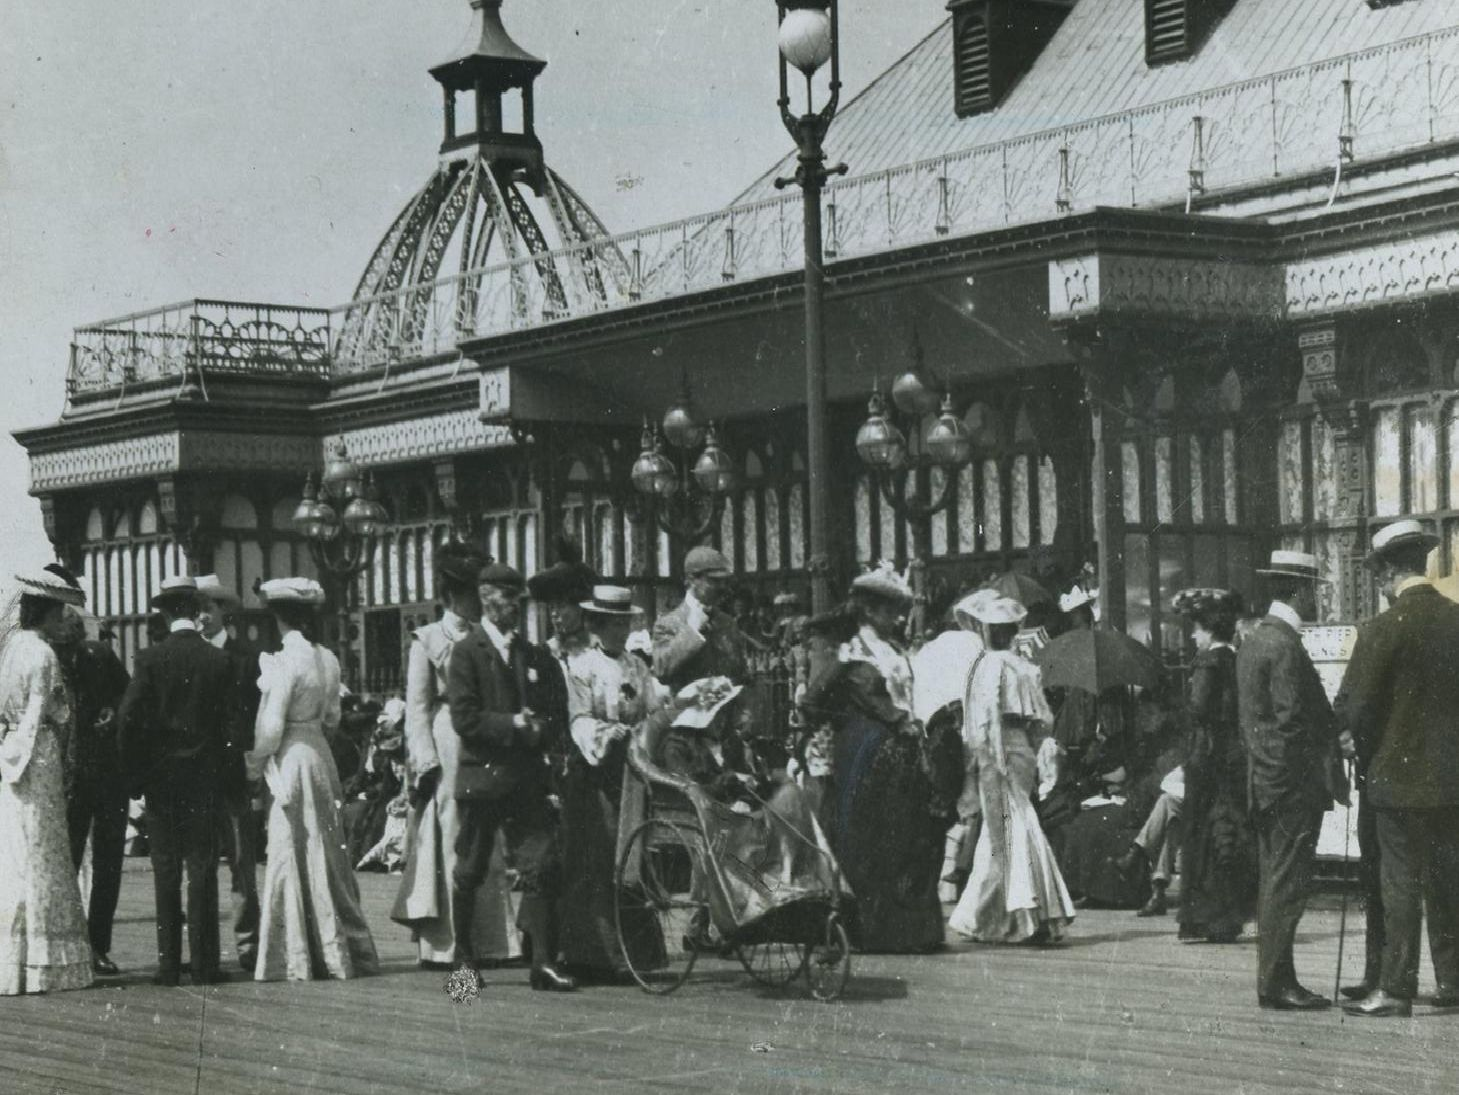 The oldest glass plate photograph dates back to 1897. All turned out to the North Pier in those days and the picture shows crowds in front of the old Indian Pavilion.